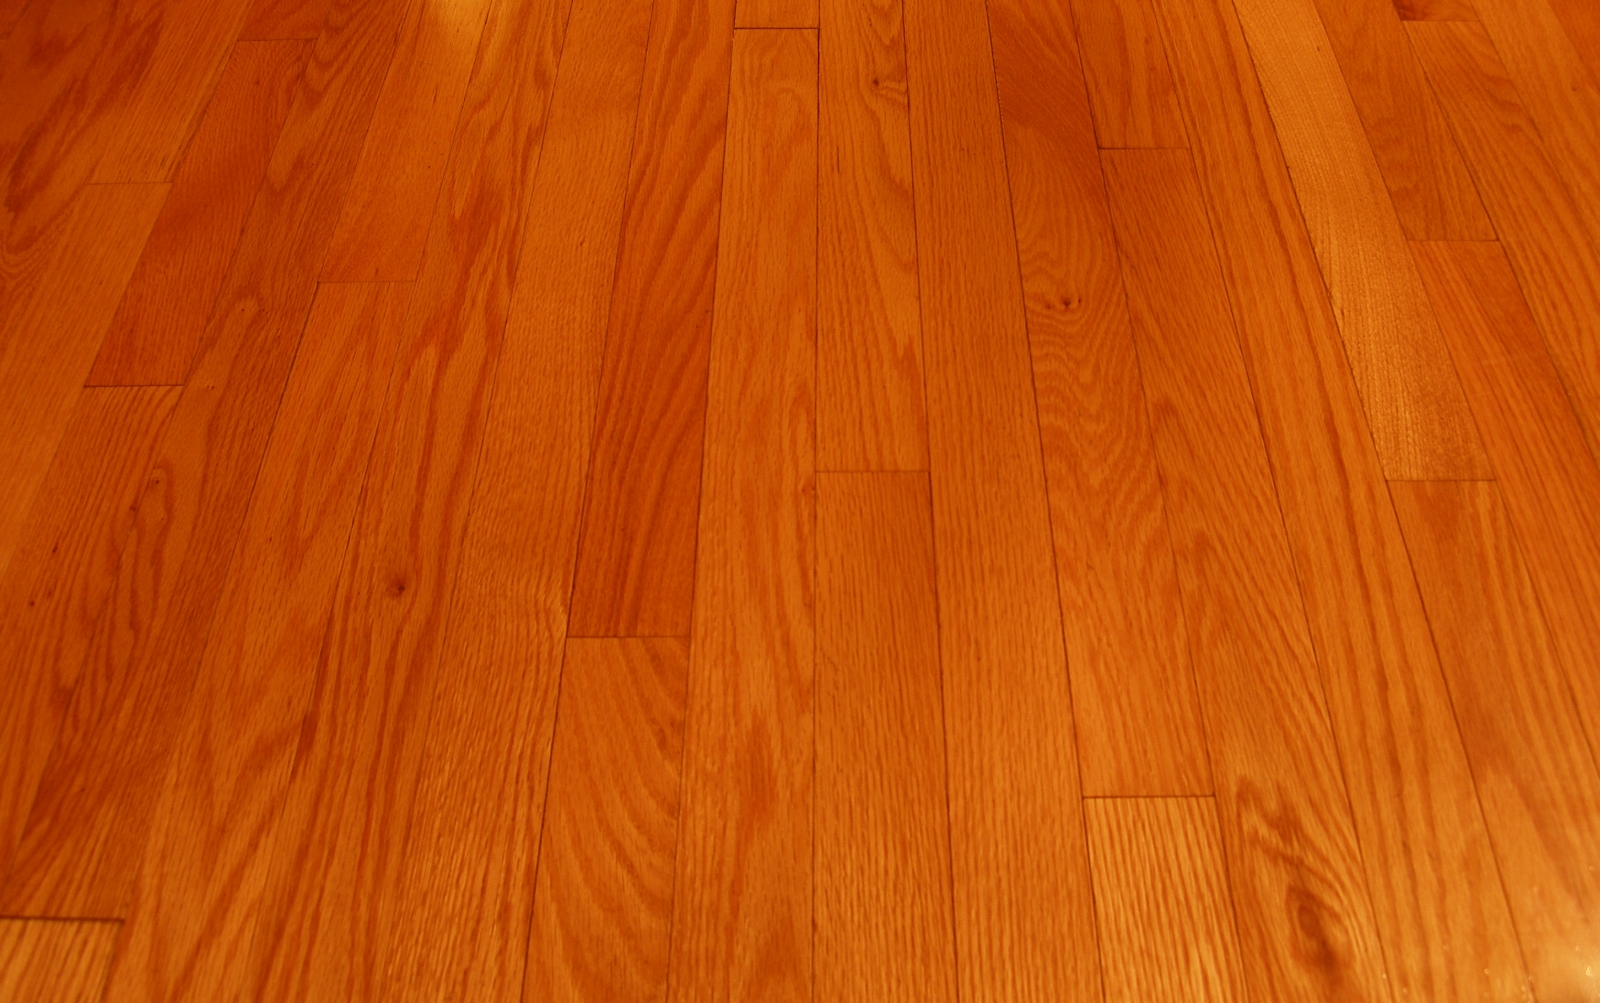 Unique wood floors choosing between solid vs engineered for Hardwood flooring